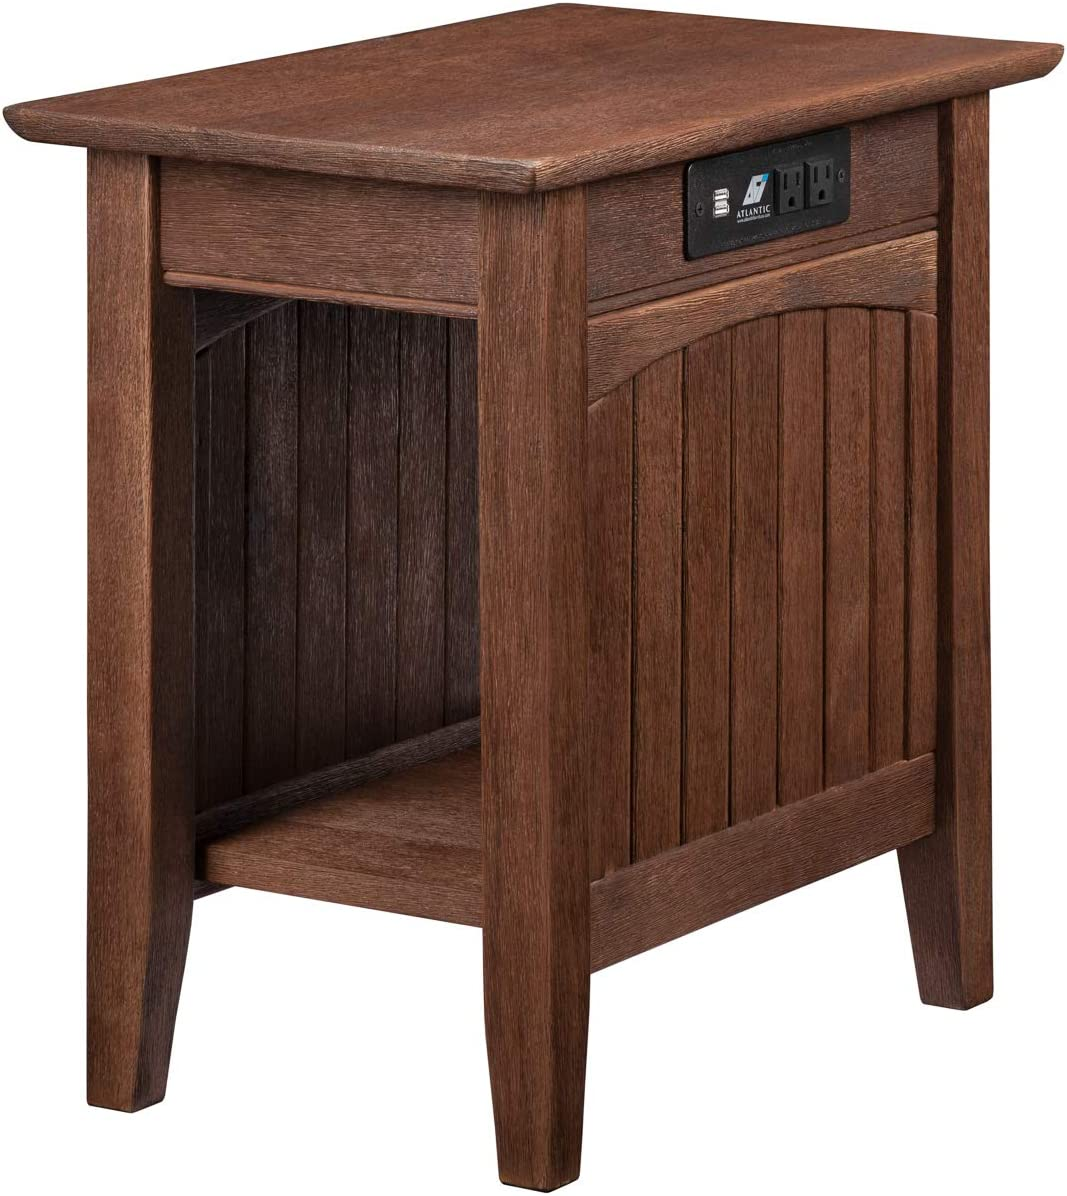 Atlantic Furniture Nantucket Chair Side Table, (22